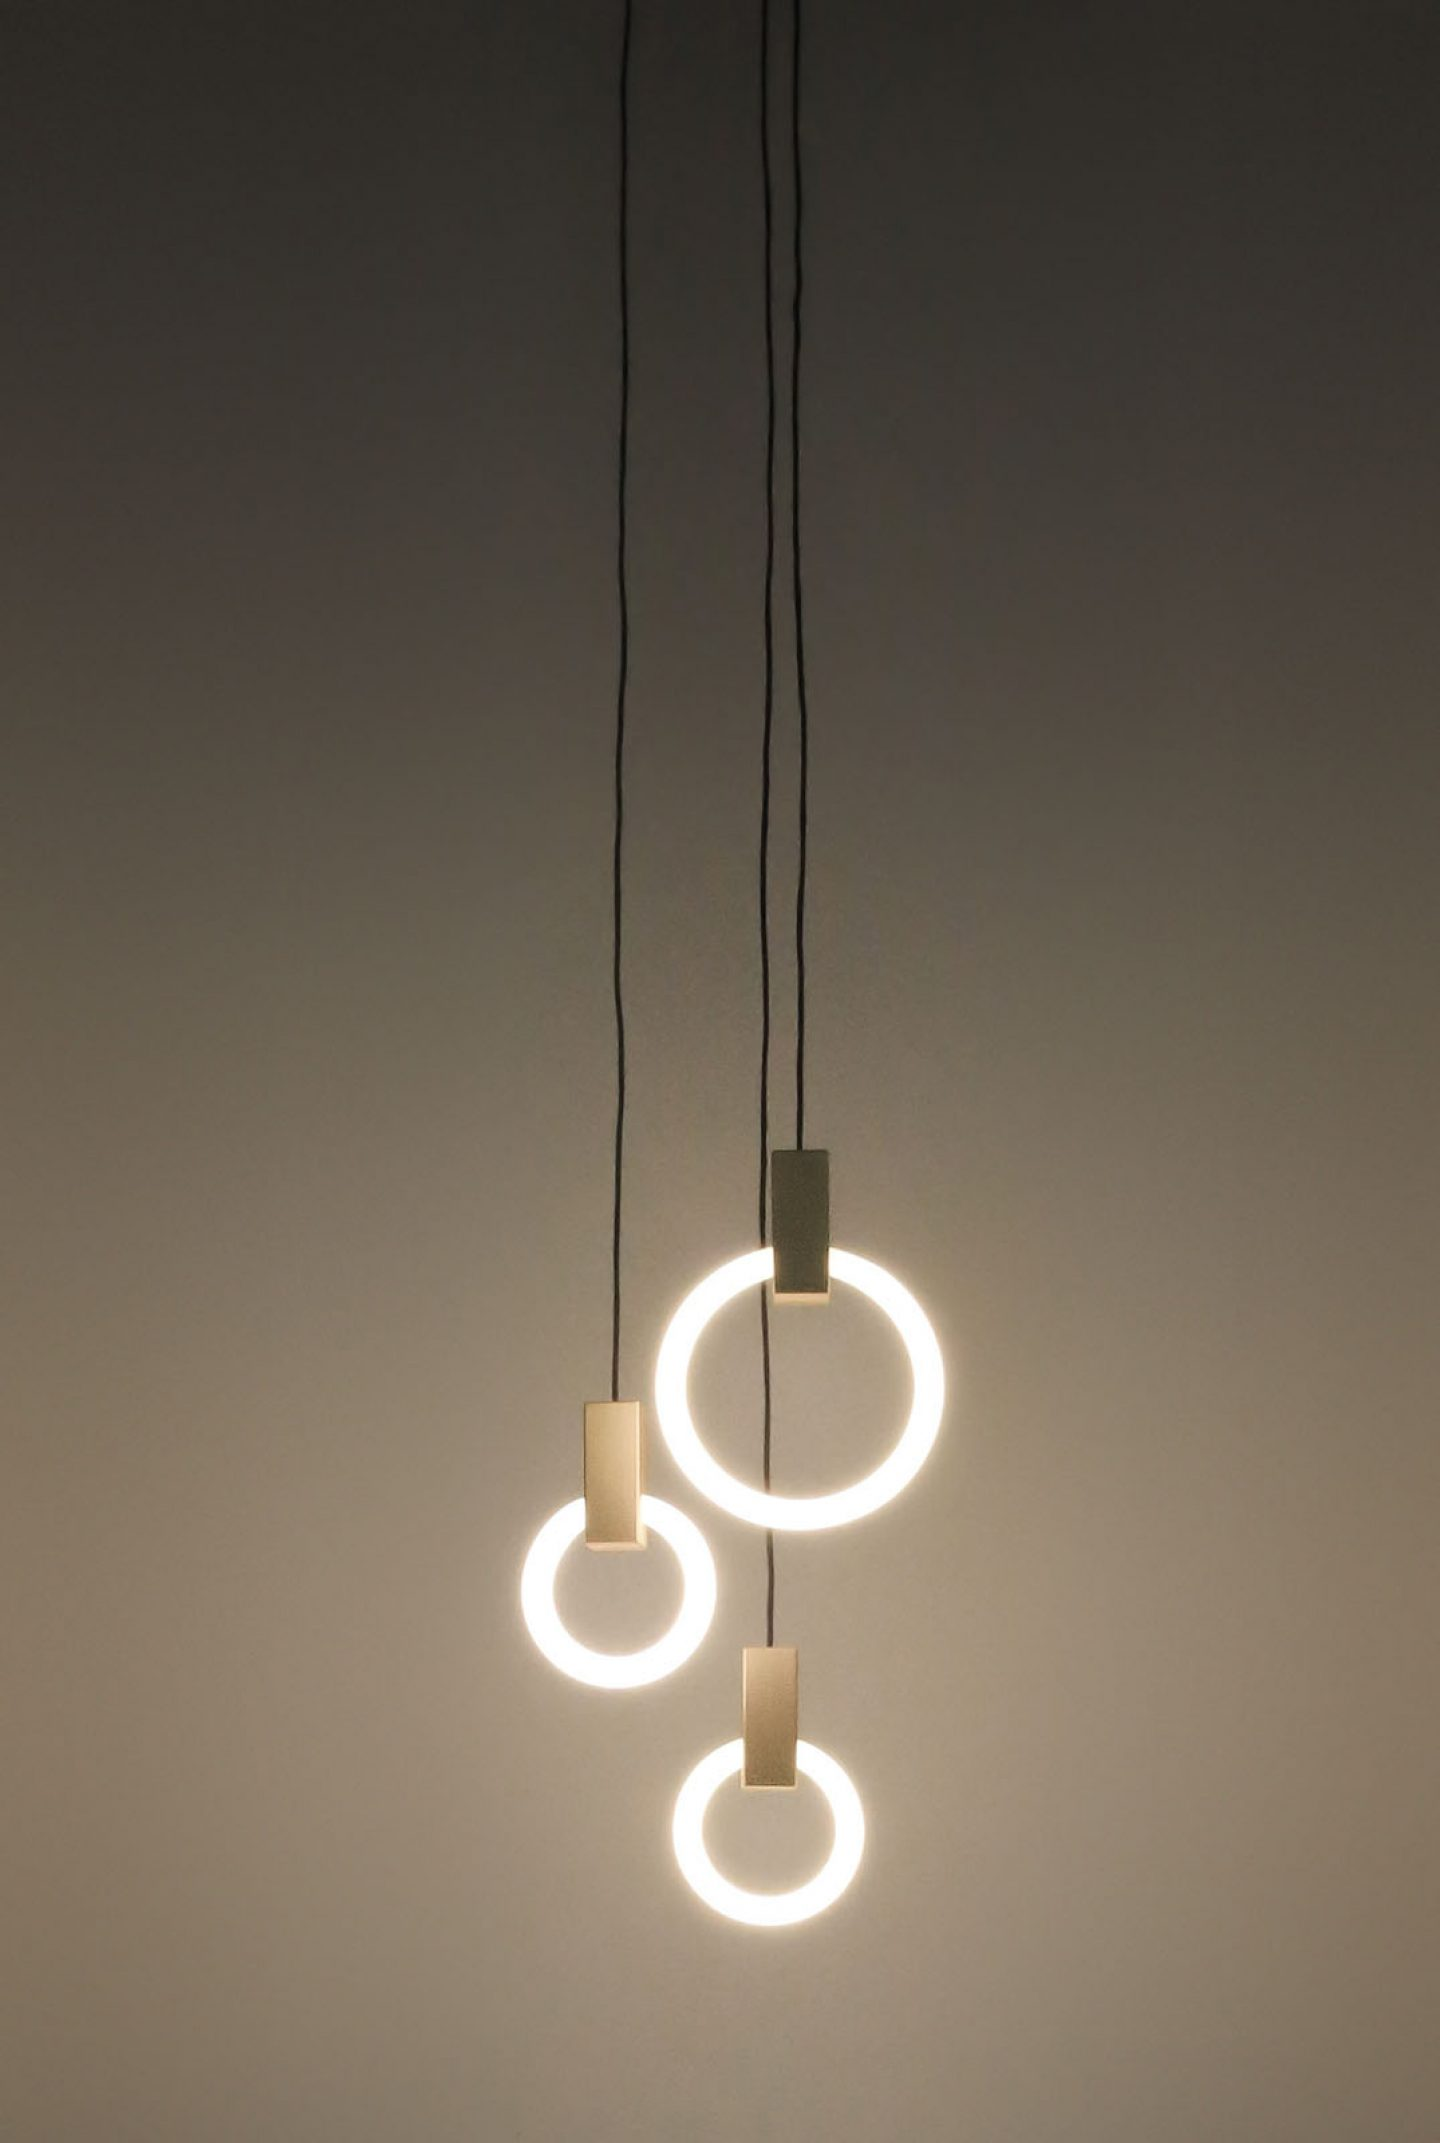 Design_Halo_Lamp_Matthew_McCormick_Studio_03